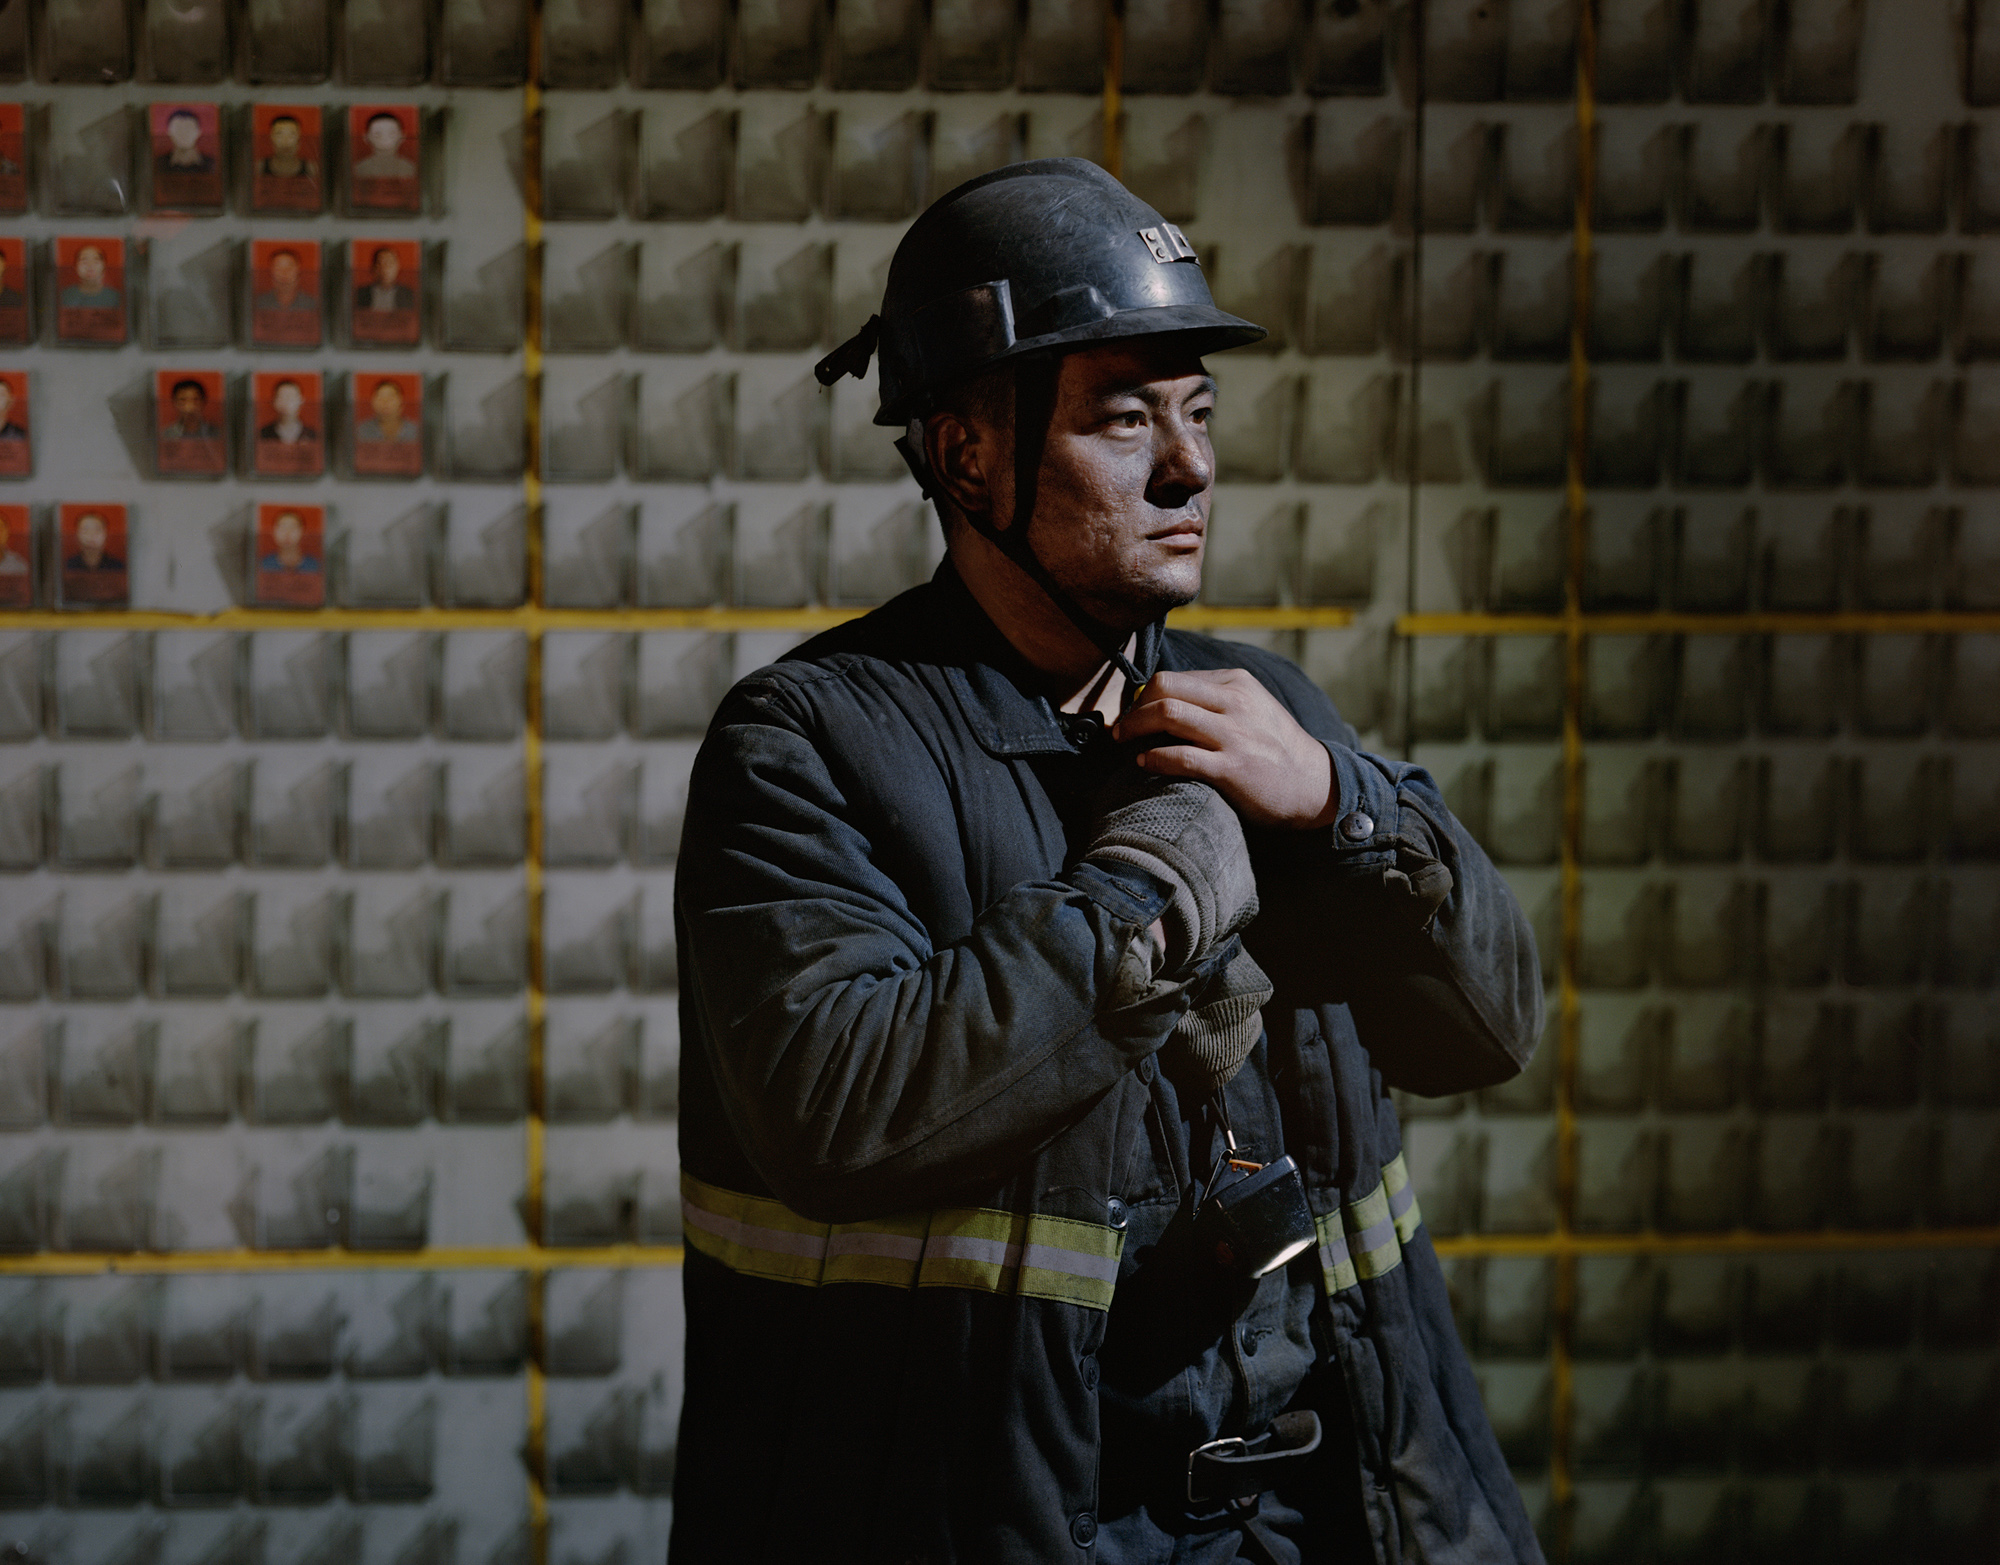 Yu Cunjiang, 31, takes off his safety helmet and gets ready for breakfast after working a 14-hour night shift in the Jinhuagong Coal Mine in Datong. Shanxi has shuttered 52 coal mines in 2016 and 2017, laying off thousands of workers in the process.